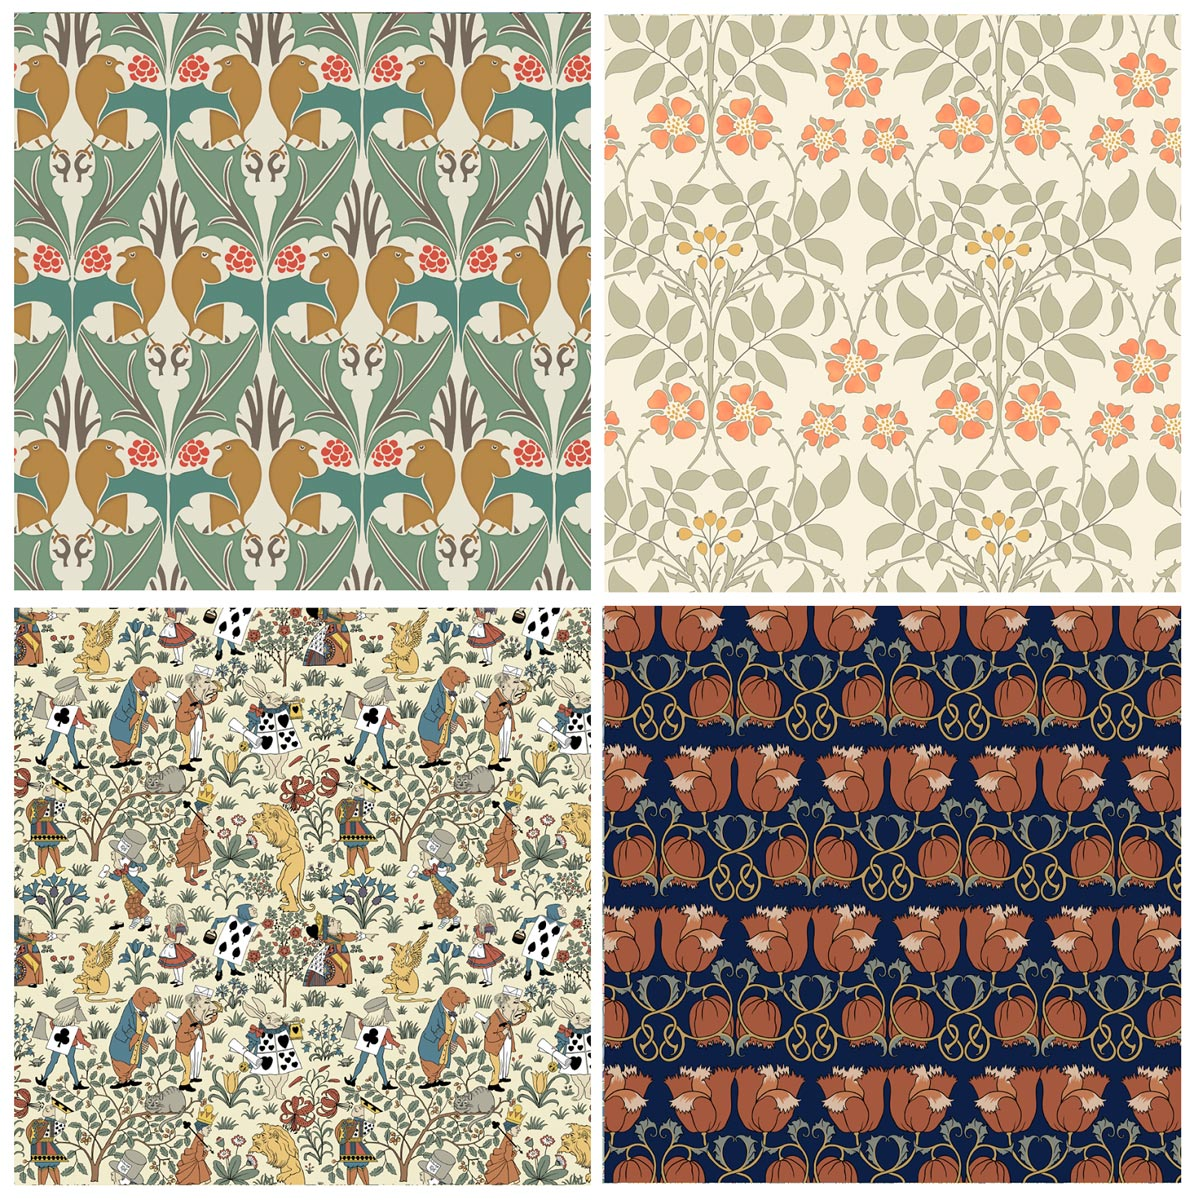 Pattern Design by C.F.A. Voysey